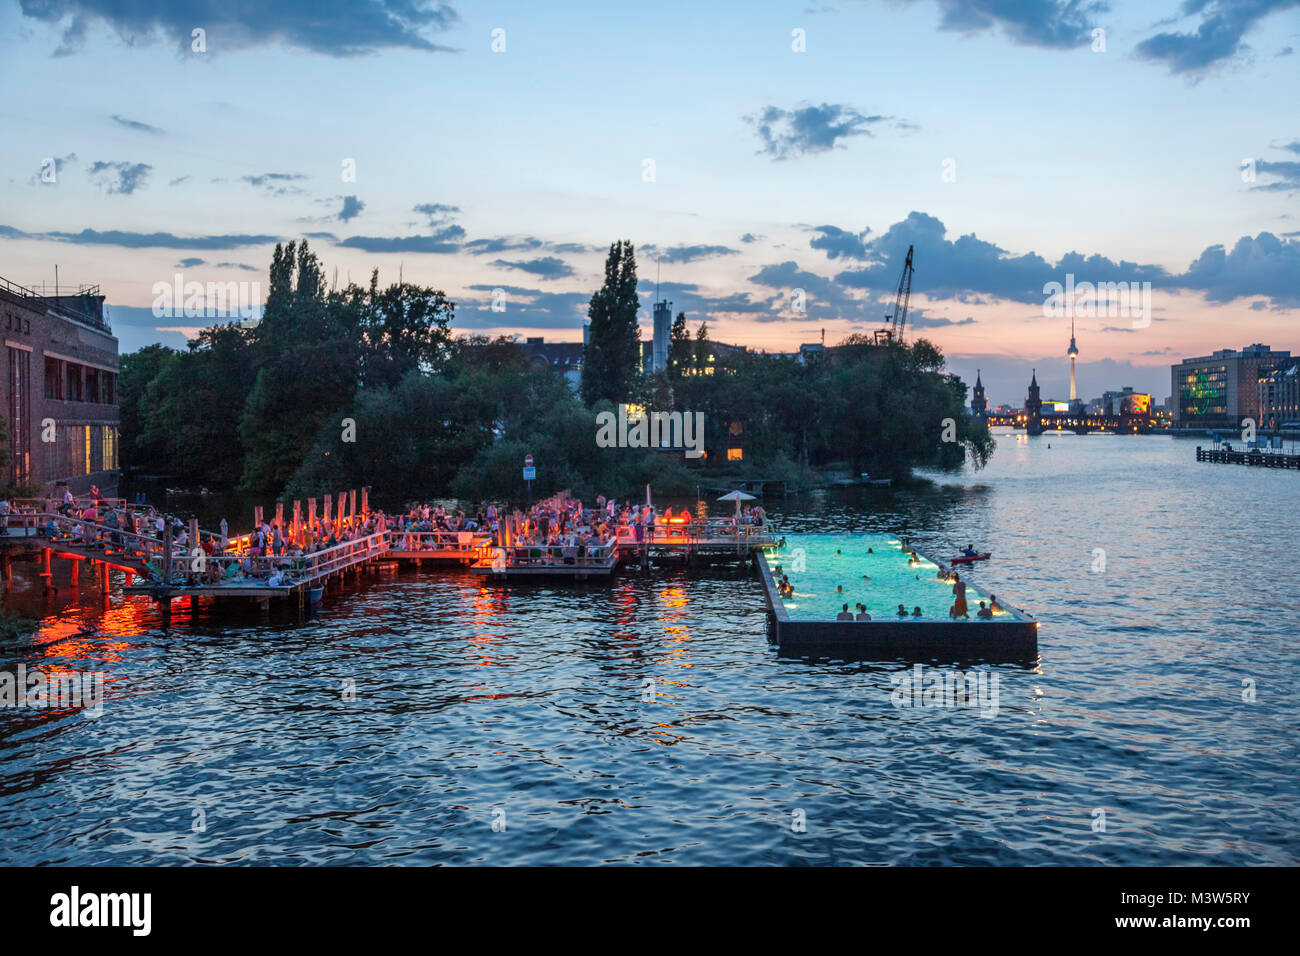 Bathing ship in River Spree at sunset, Badeschiff, Berlin, Germany - Stock Image